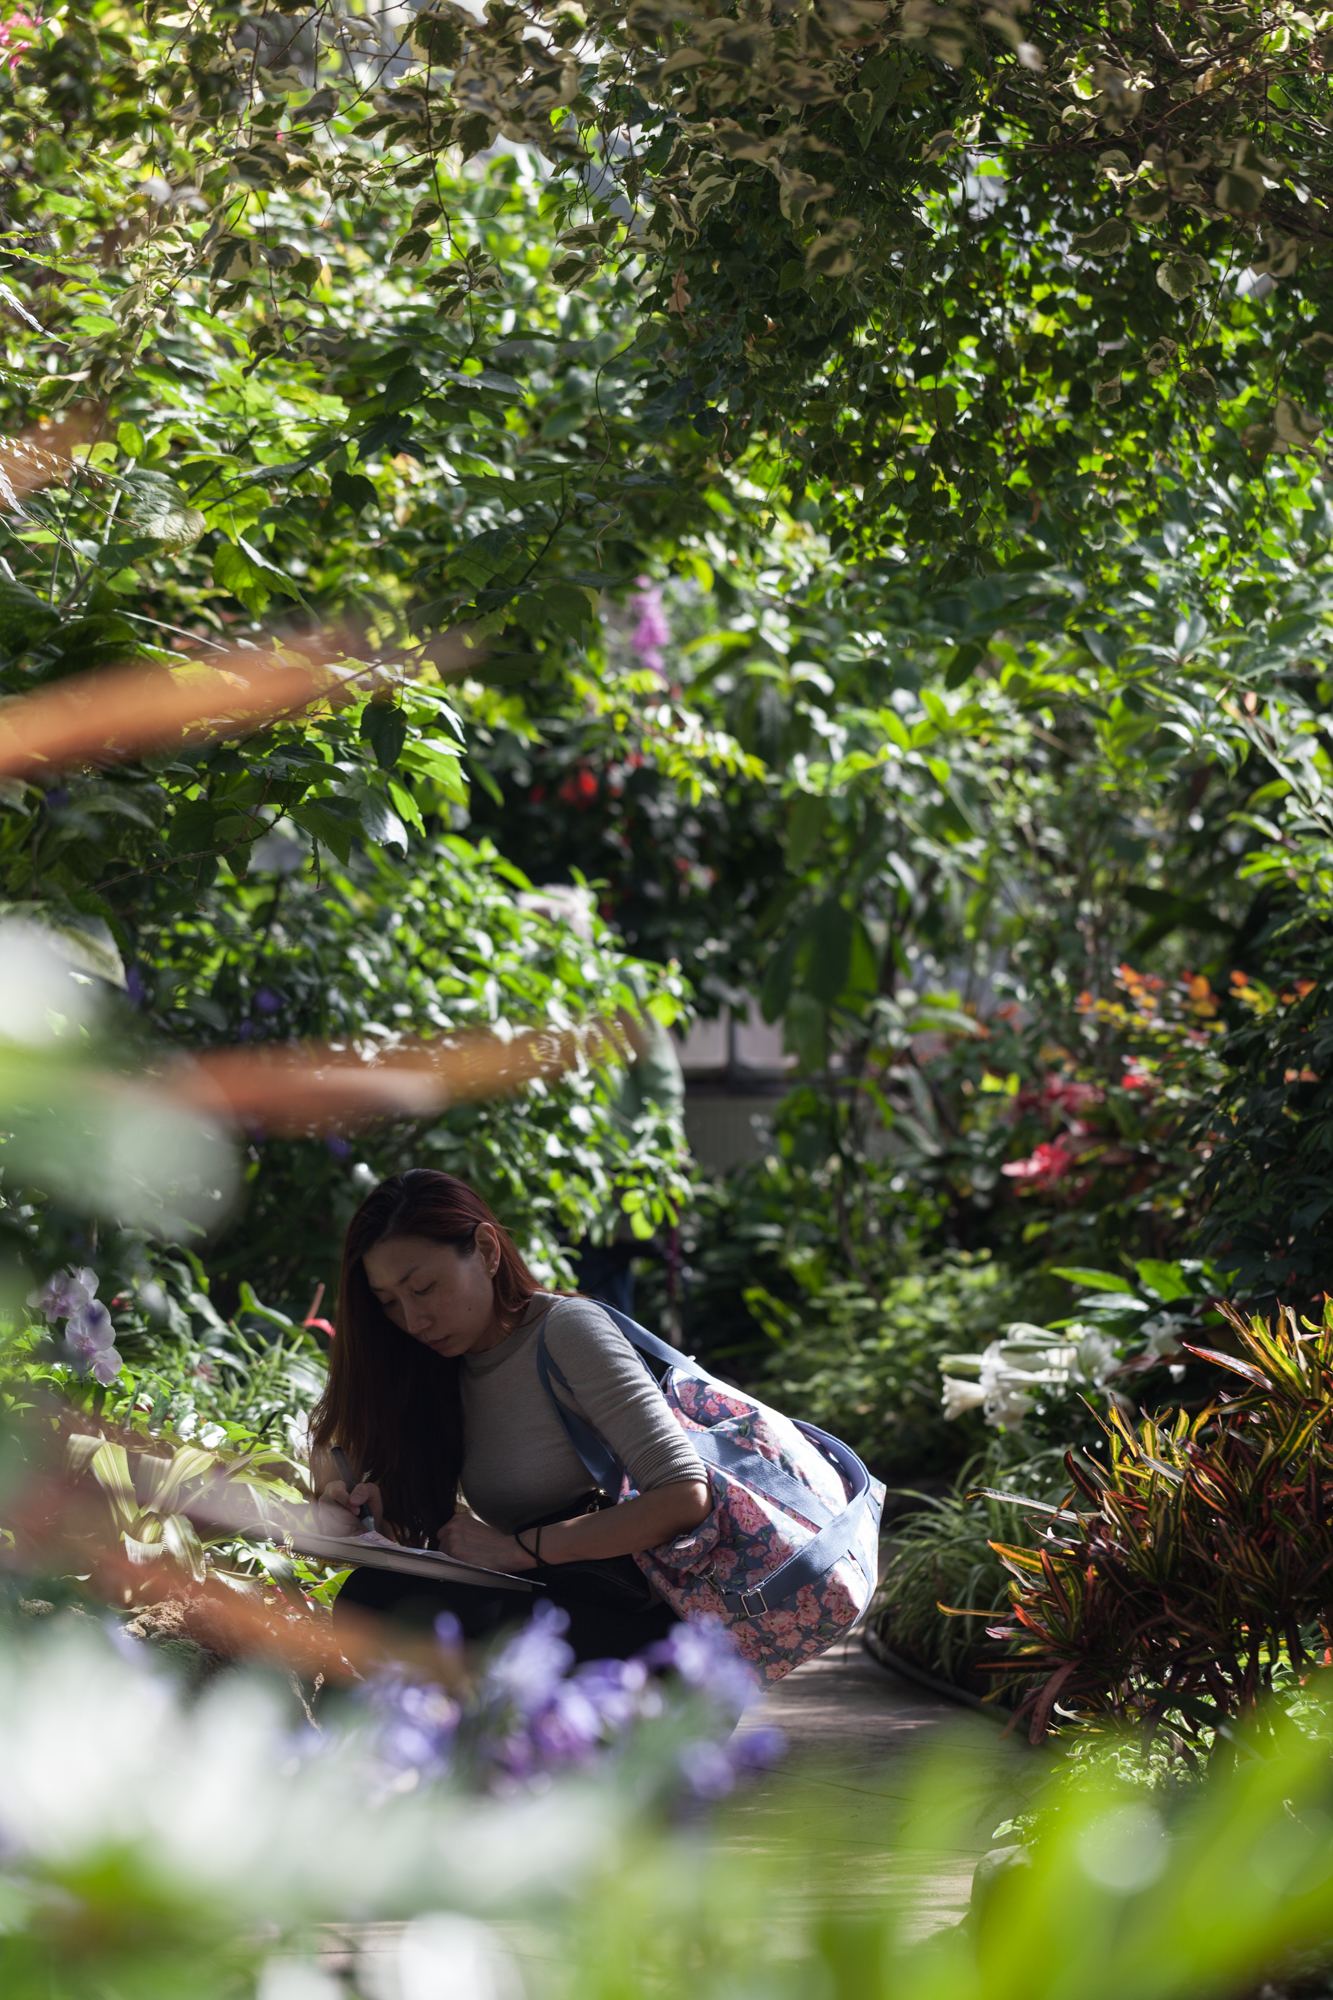 A young woman takes notes of different specimens at the Allan Garden Conservatory in Toronto.